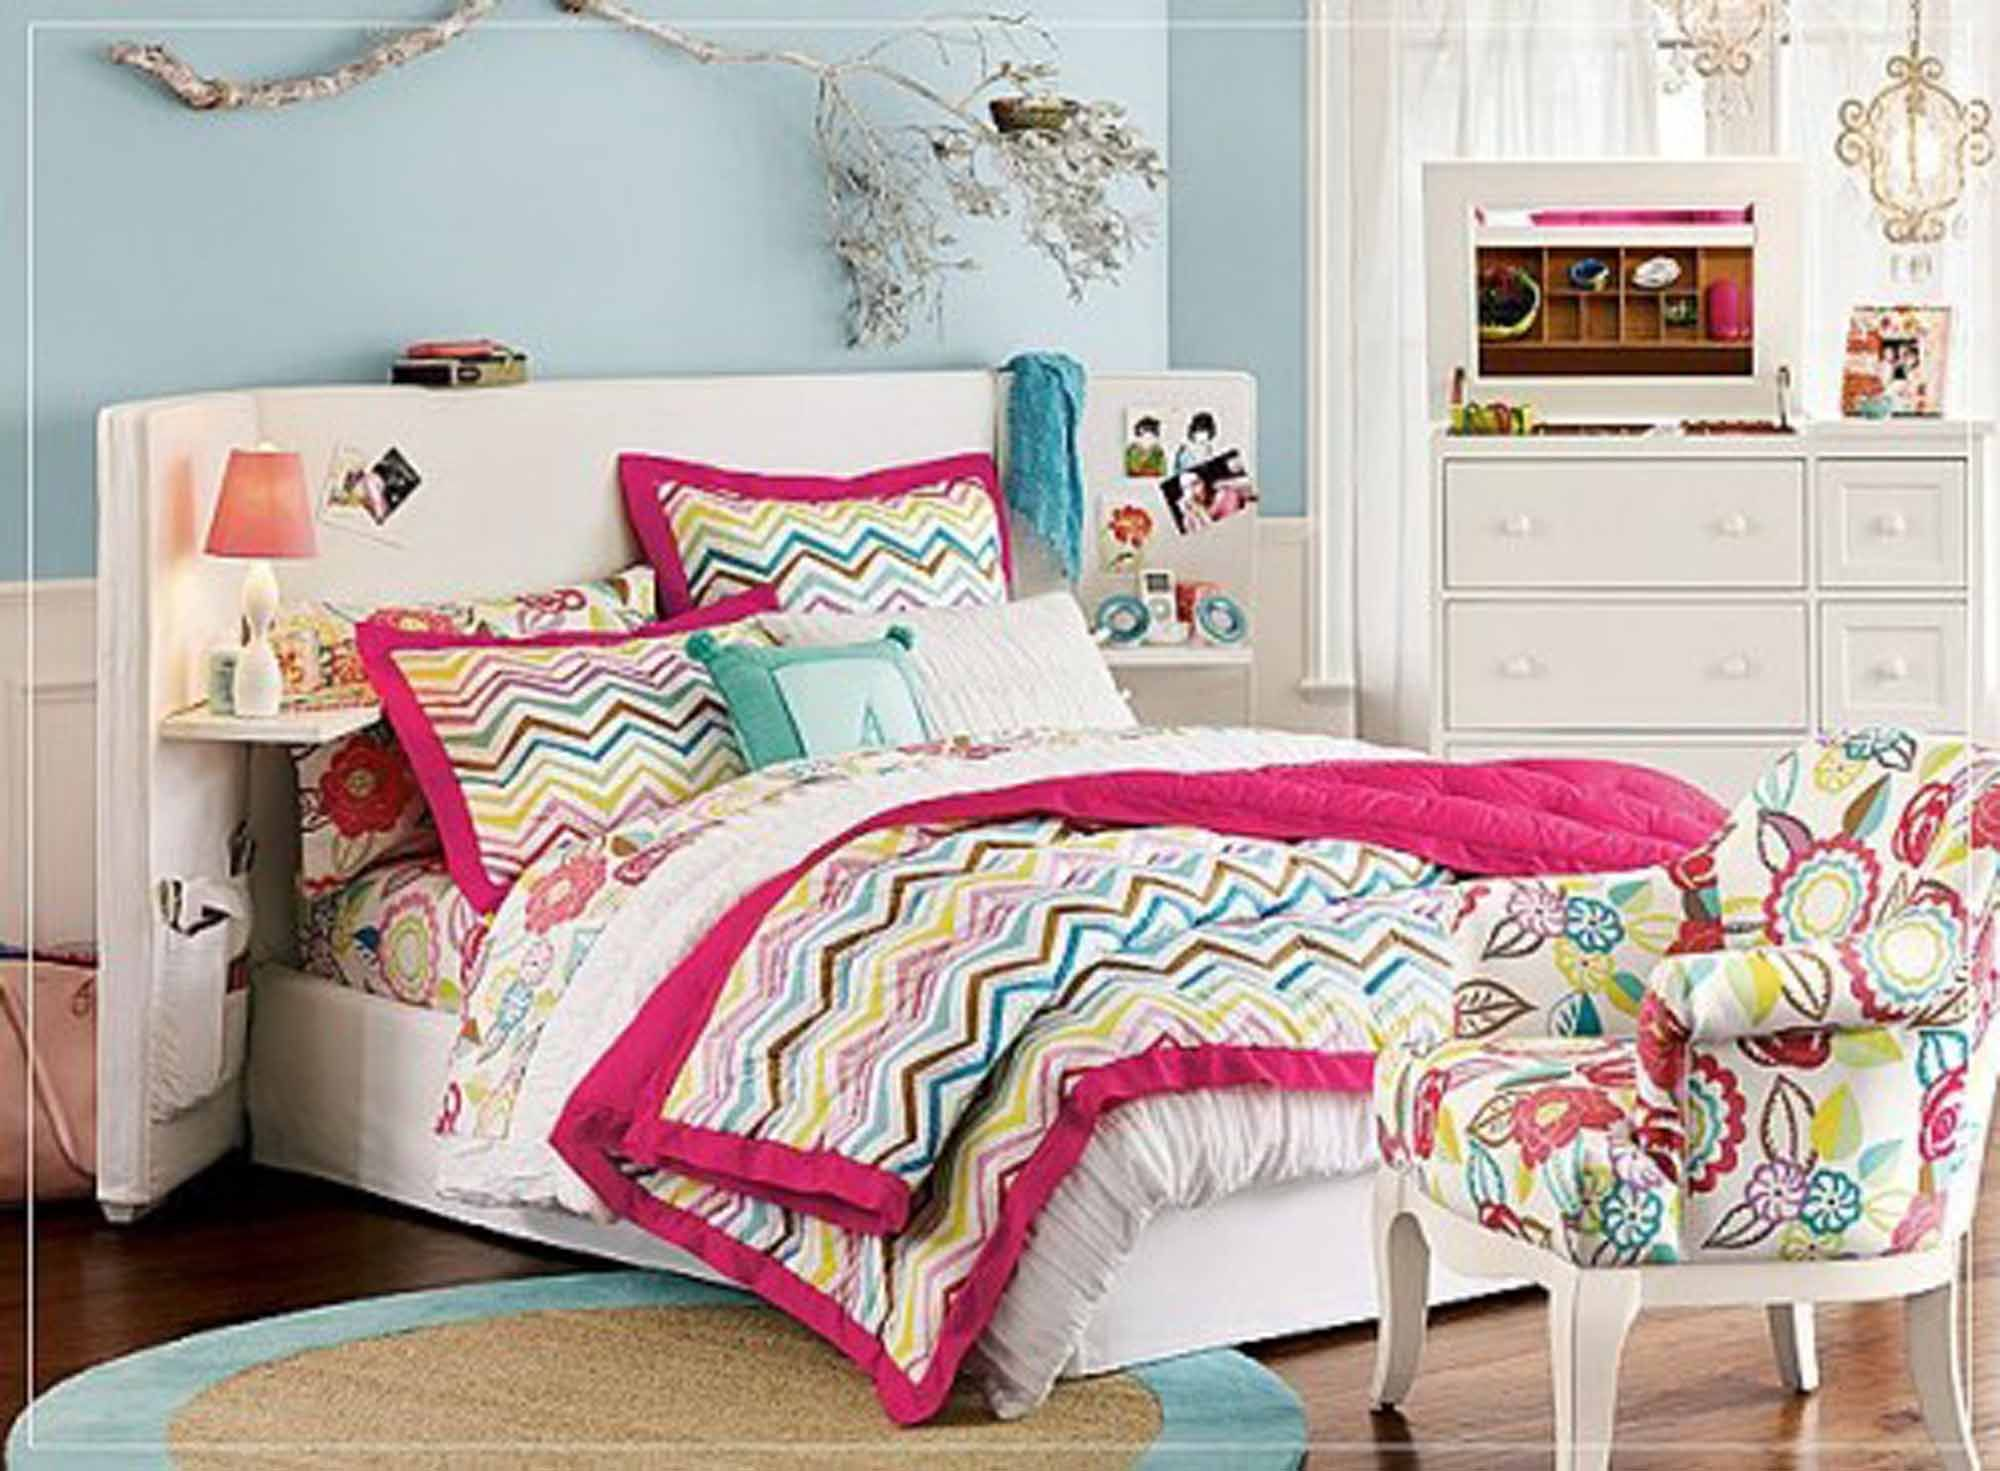 Bedroom ideas for teenage girls light pink - Room Colors Fascinating Teenage Girl Room Decozt Interior Home Home Interior Decor Cute Room Decor Ideas Teenage Girl Painting Room Colors Fascinating